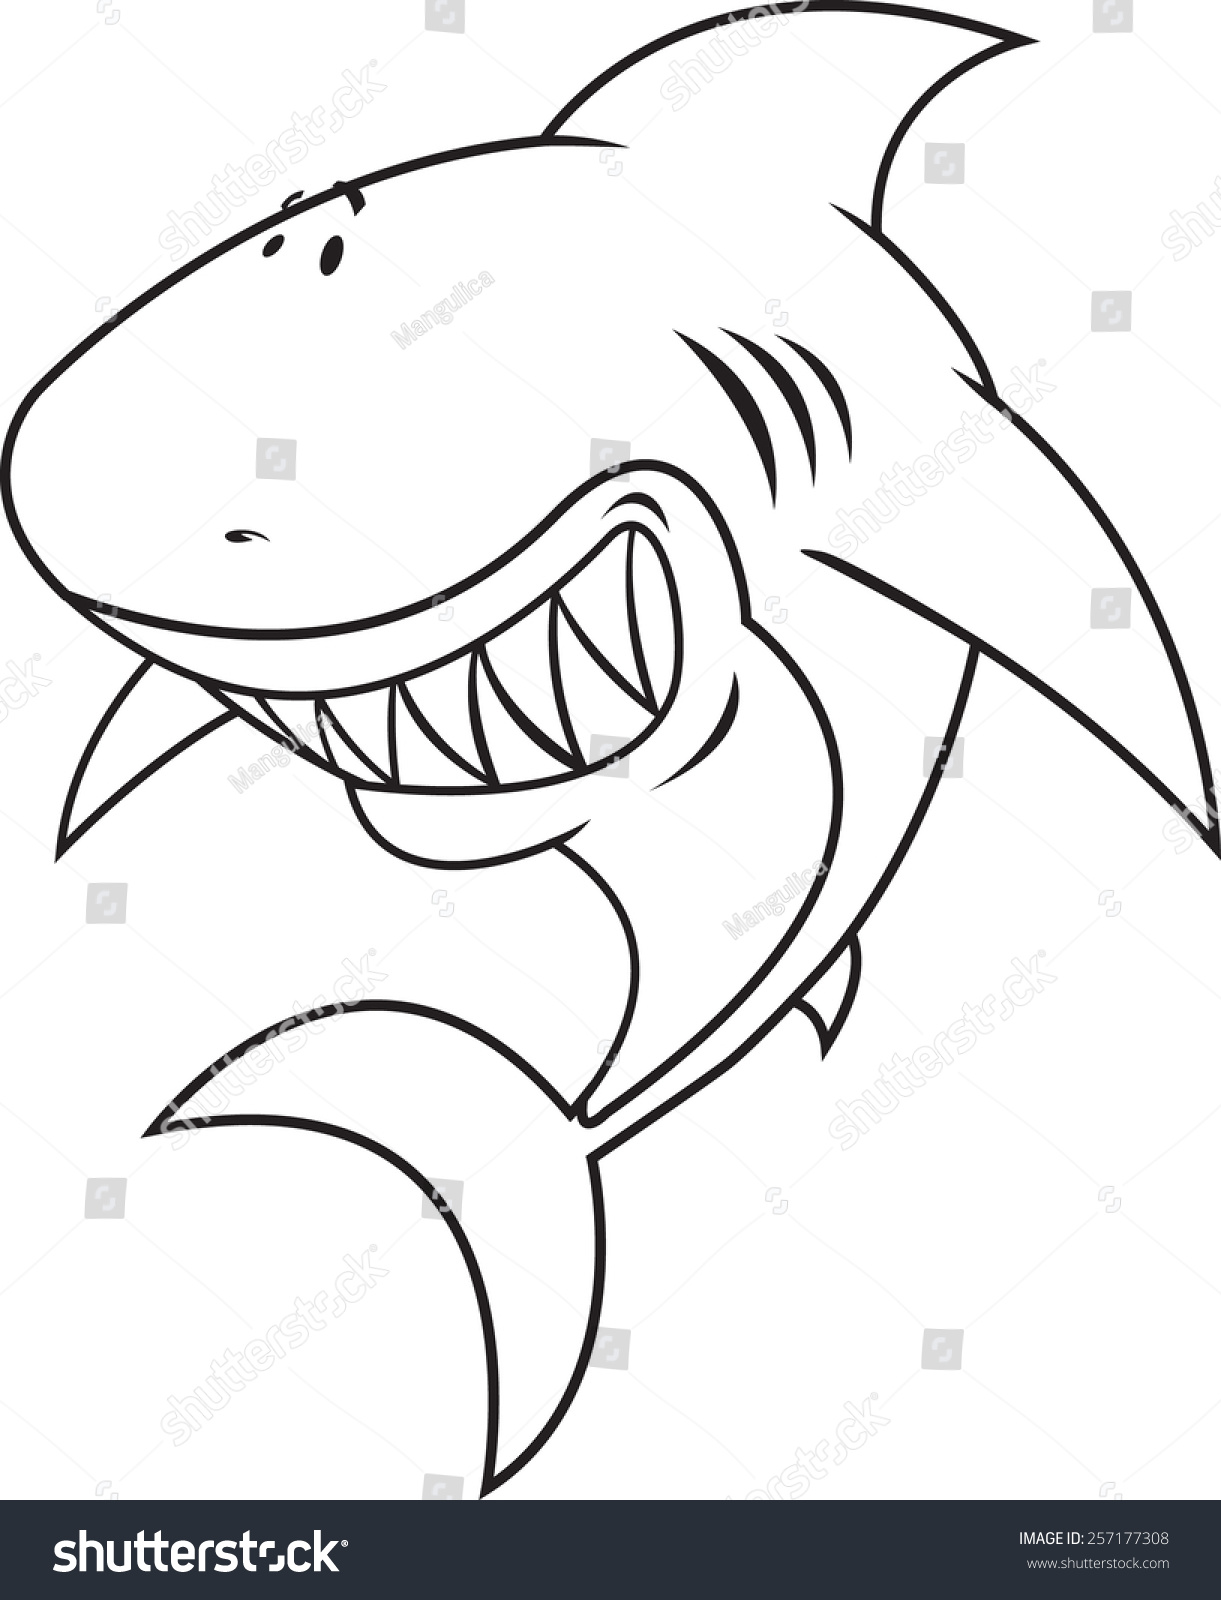 Great White Shark Happysilly Looking Coloring Book Illustration